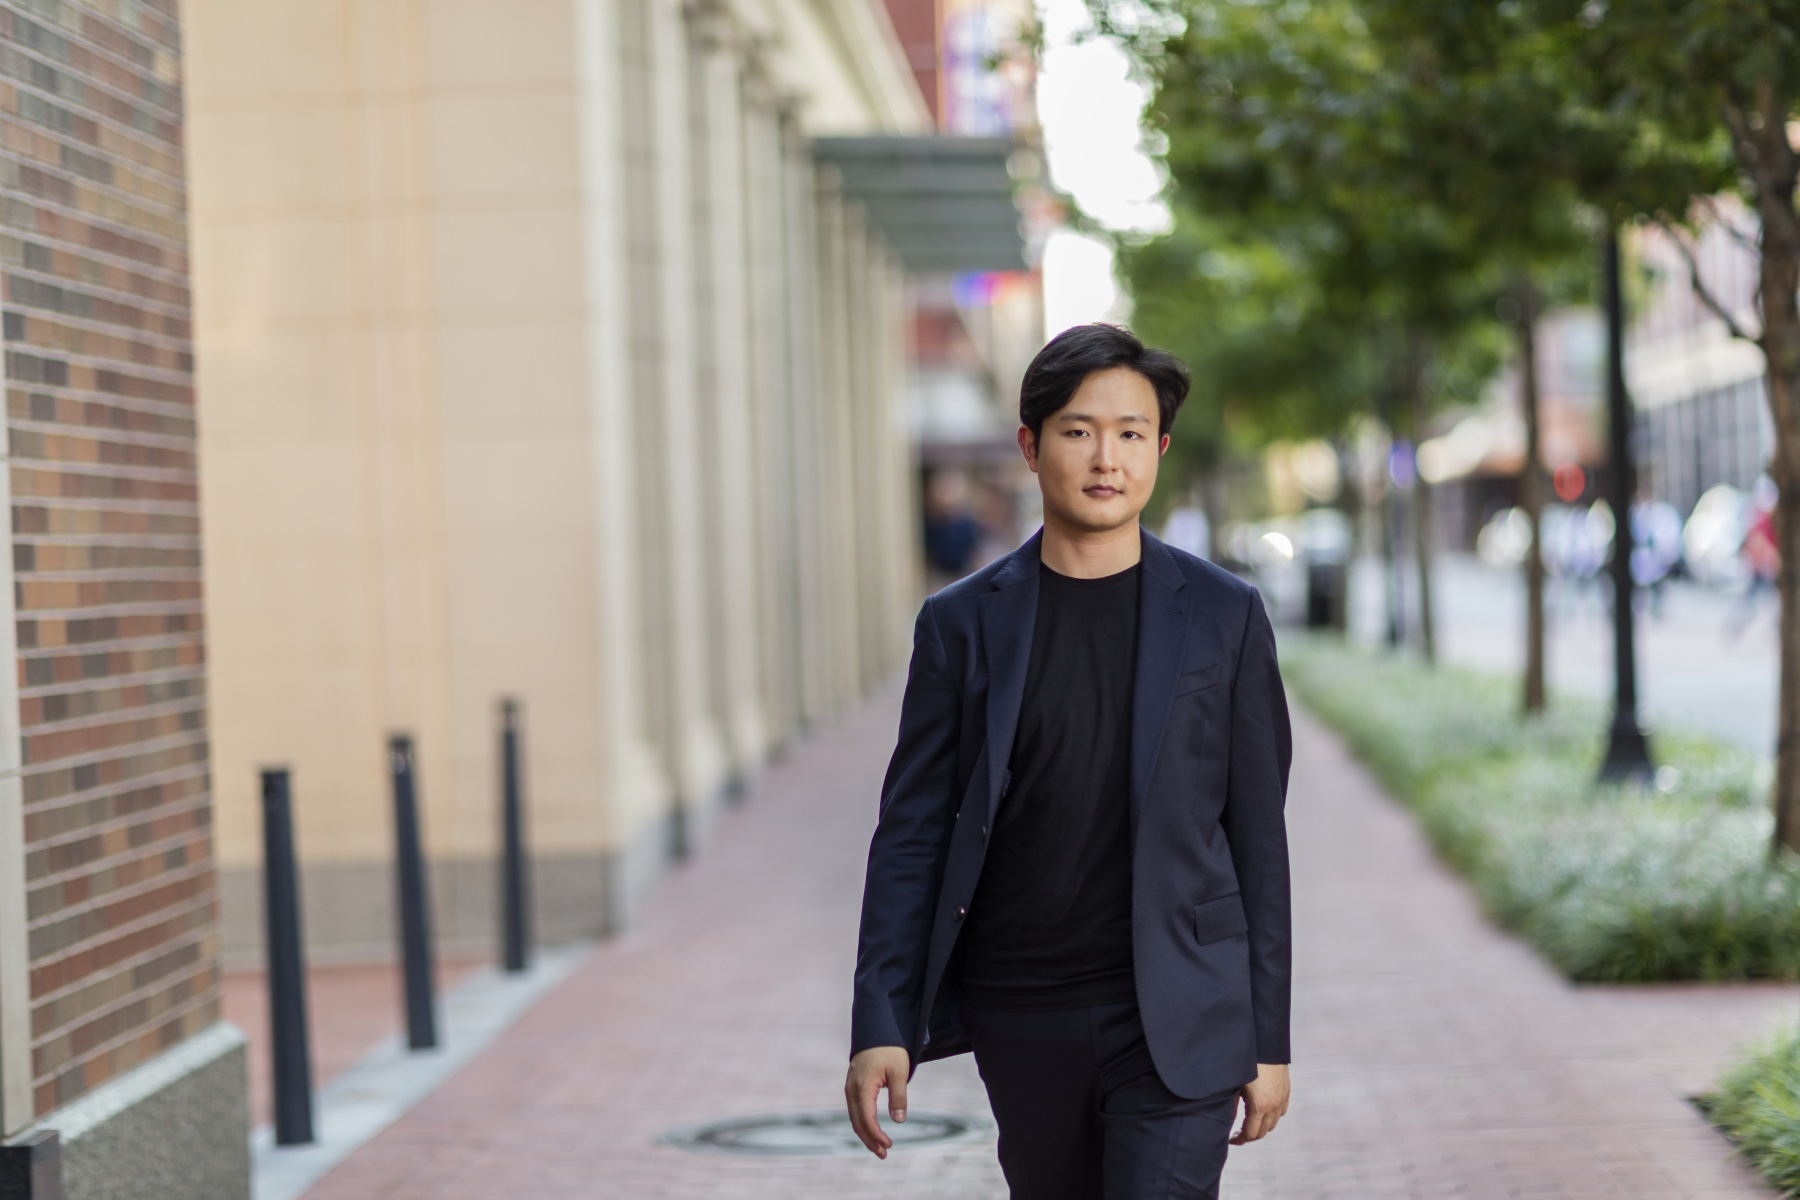 Mercury News: Superstar Korean pianist, modest as ever